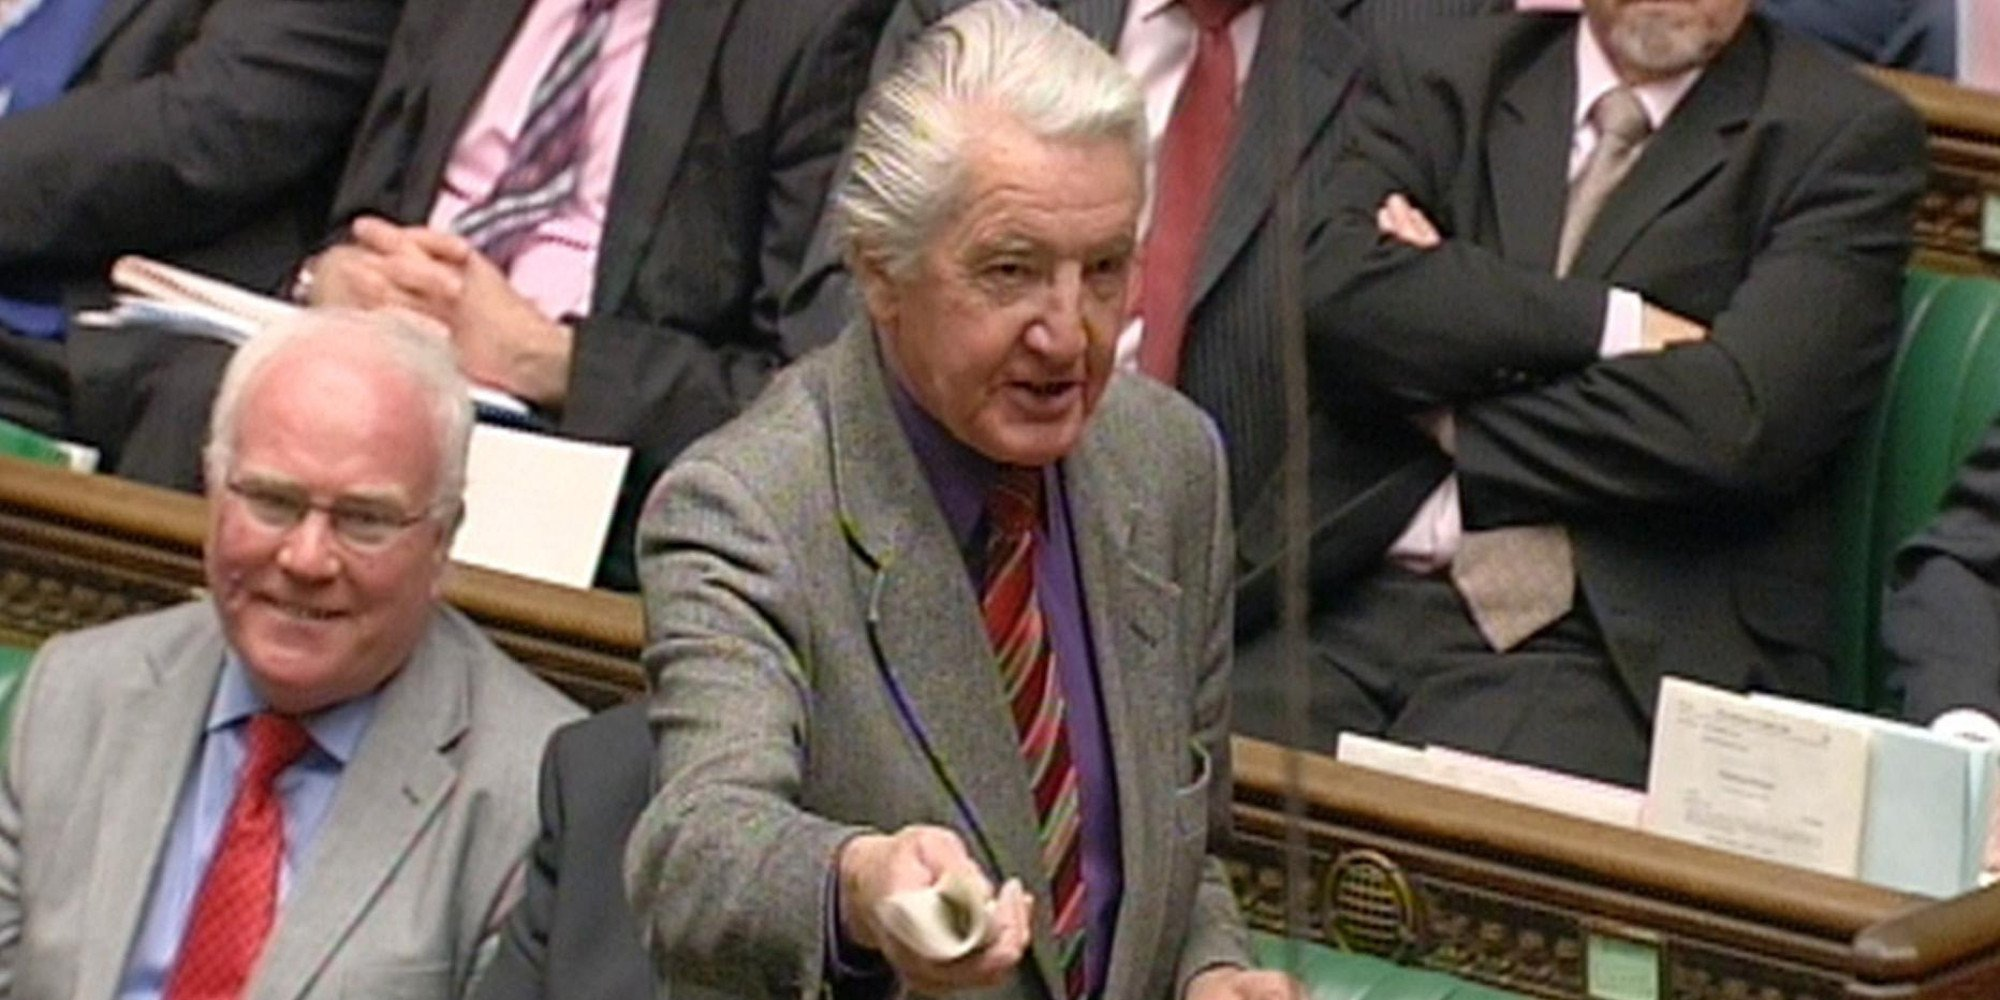 Labour Member of Parliament Dennis Skinner speaks during Prime Minister's Questions in the House of Commons, London. Credit: PA